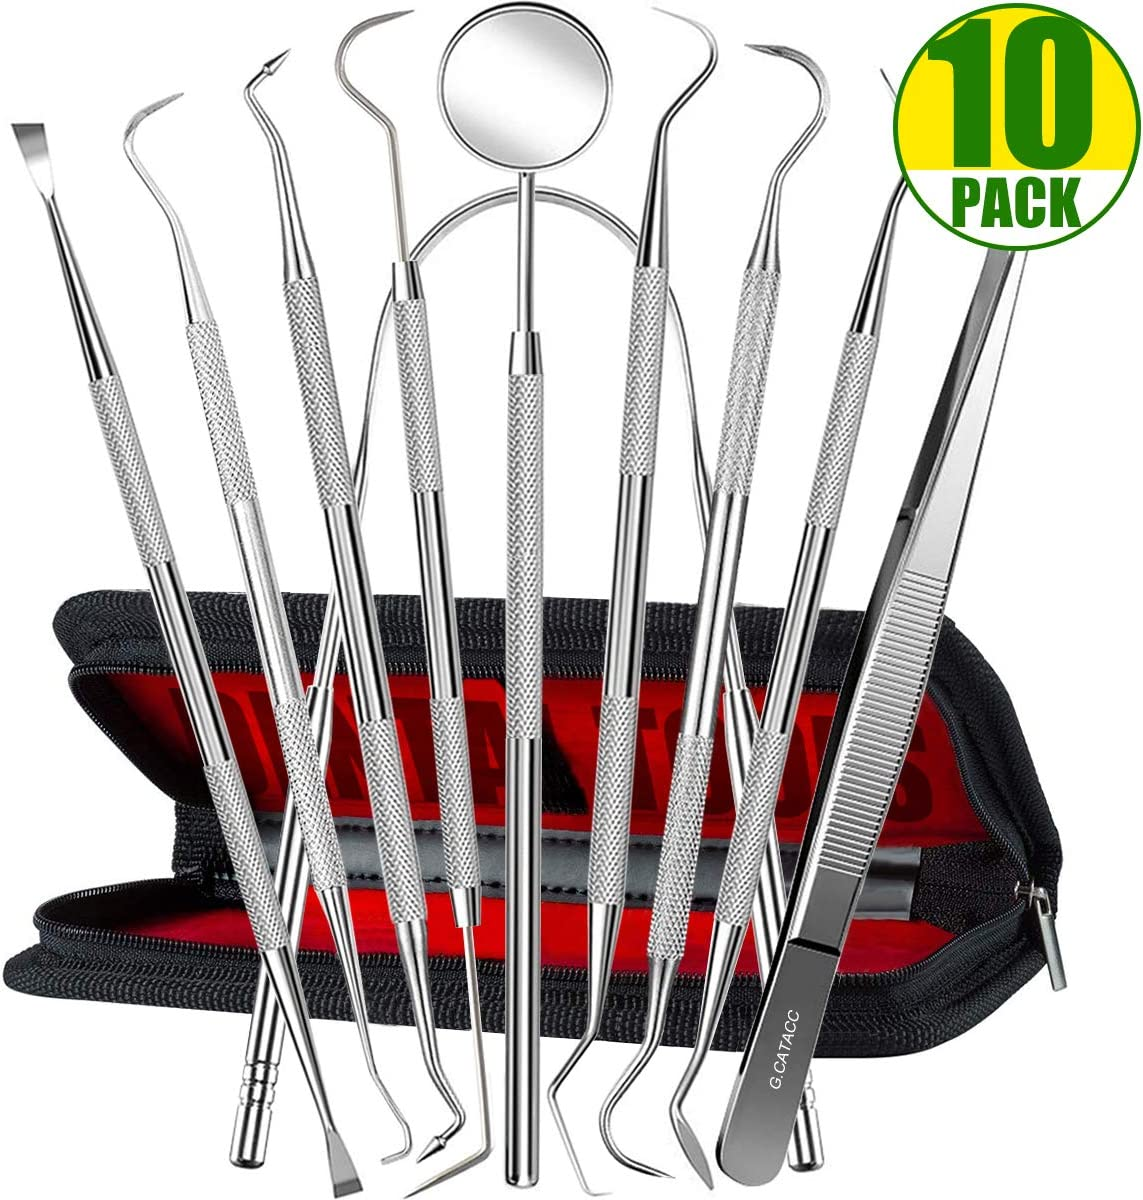 Dental Tools, 10 Pack Teeth Cleaning Tools Professional Stainless Steel Dental Tools with Mouth Mirror, Tweezer, Tongue Scraper, Tartar Scraper for Dentist, Personal Using, Dogs - with Leather Case